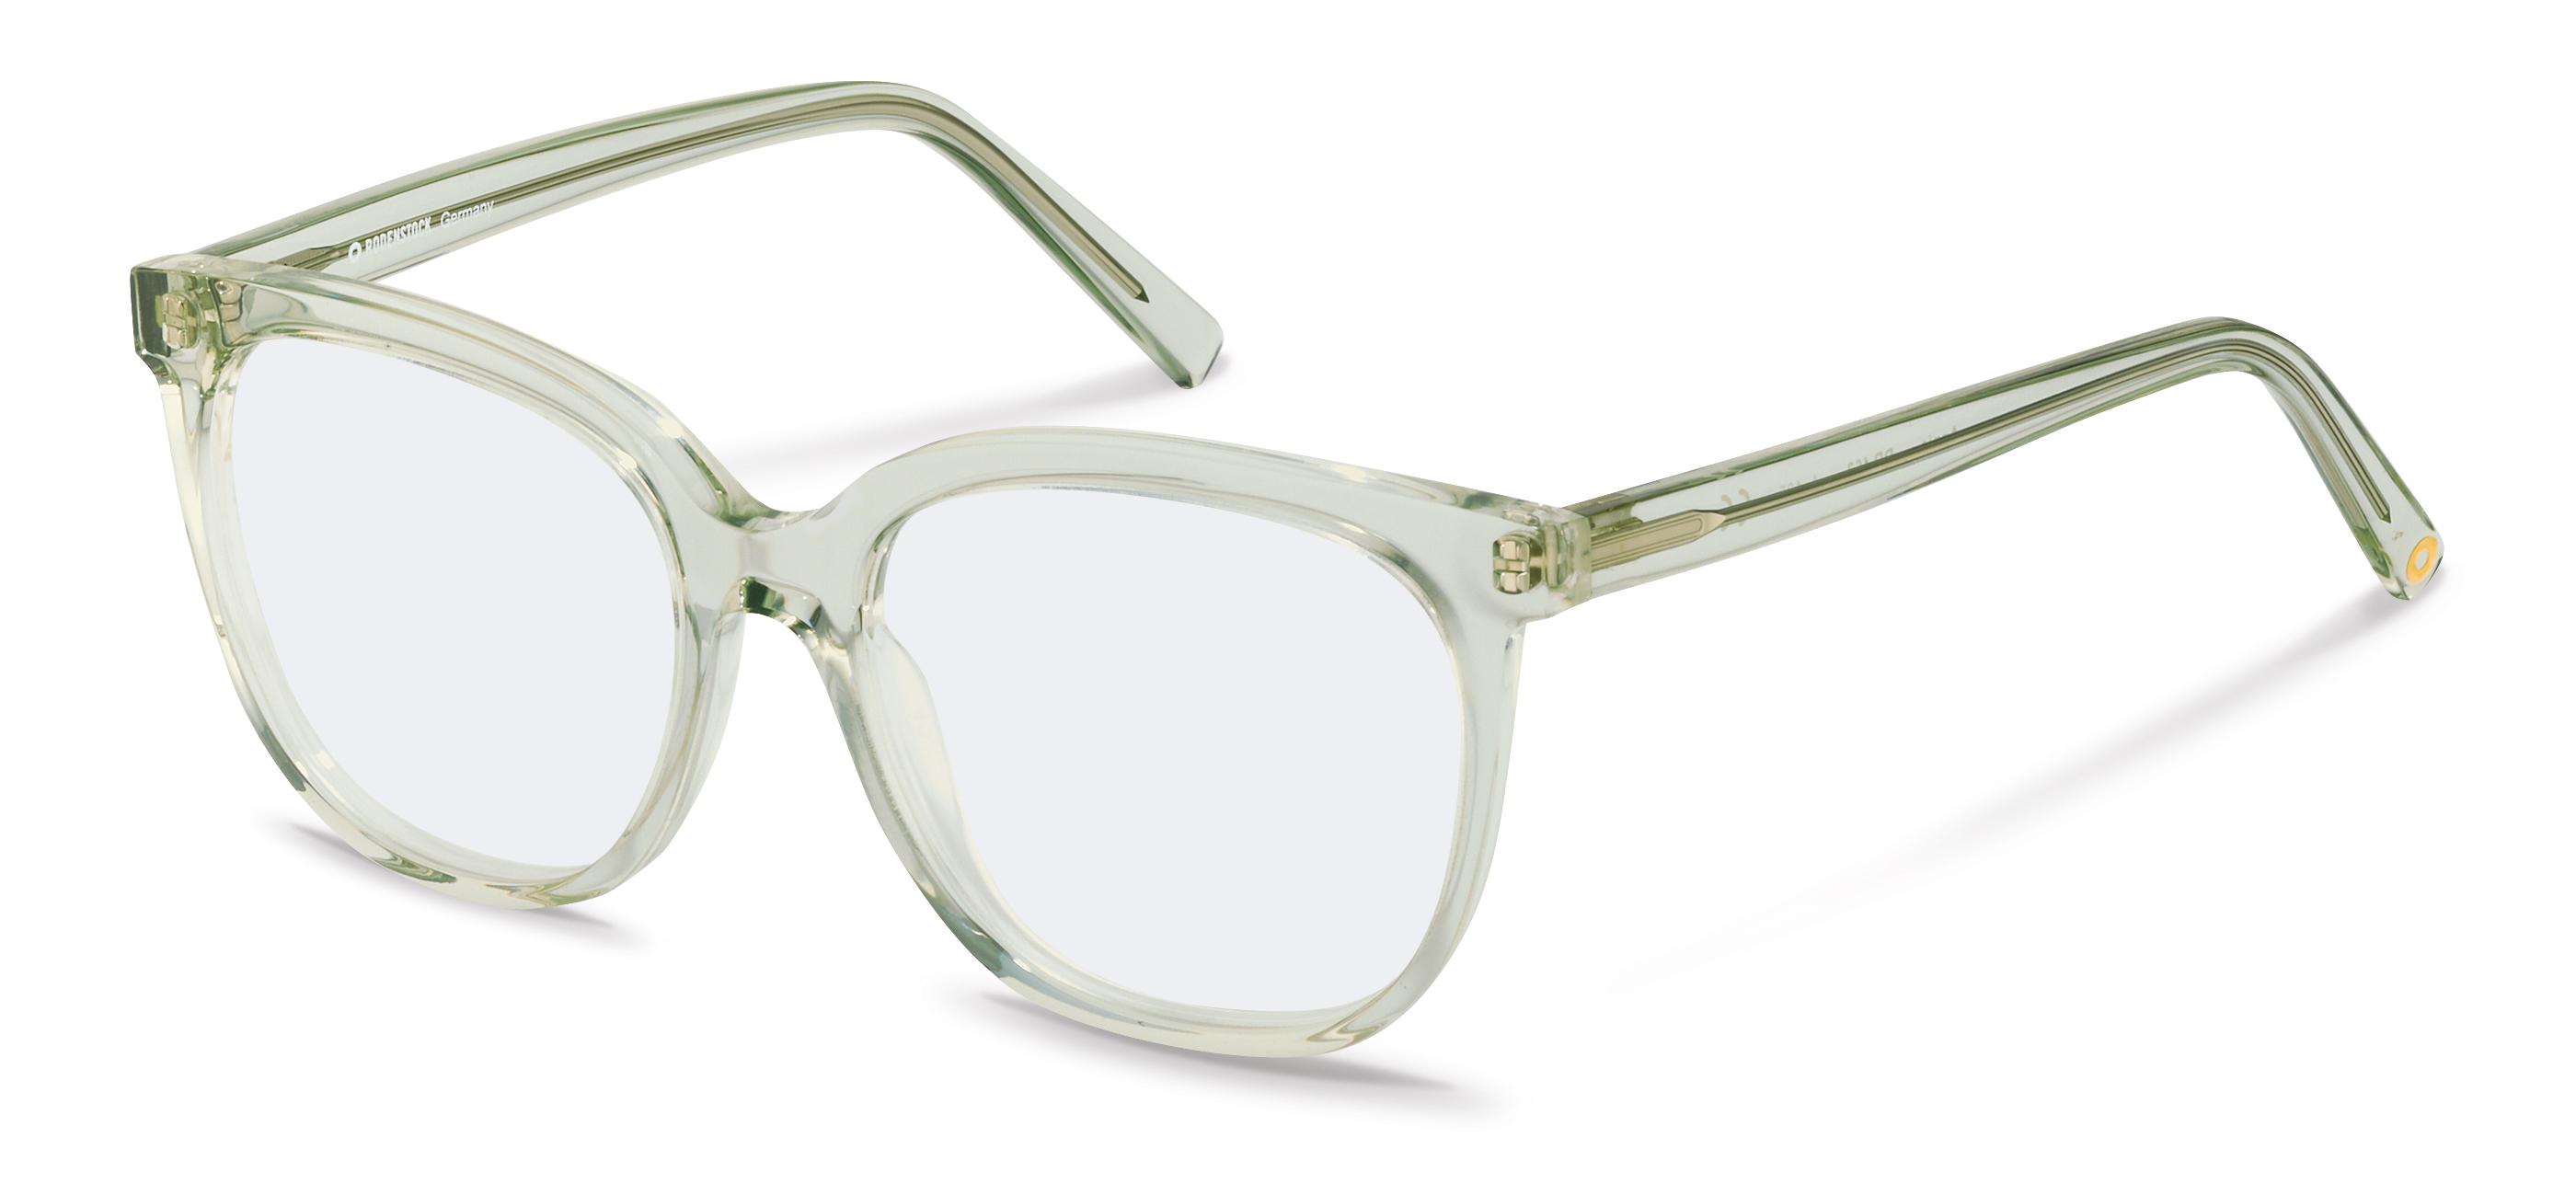 Rodenstock Capsule Collection-Bingkai koreksi-RR463-lightgreen